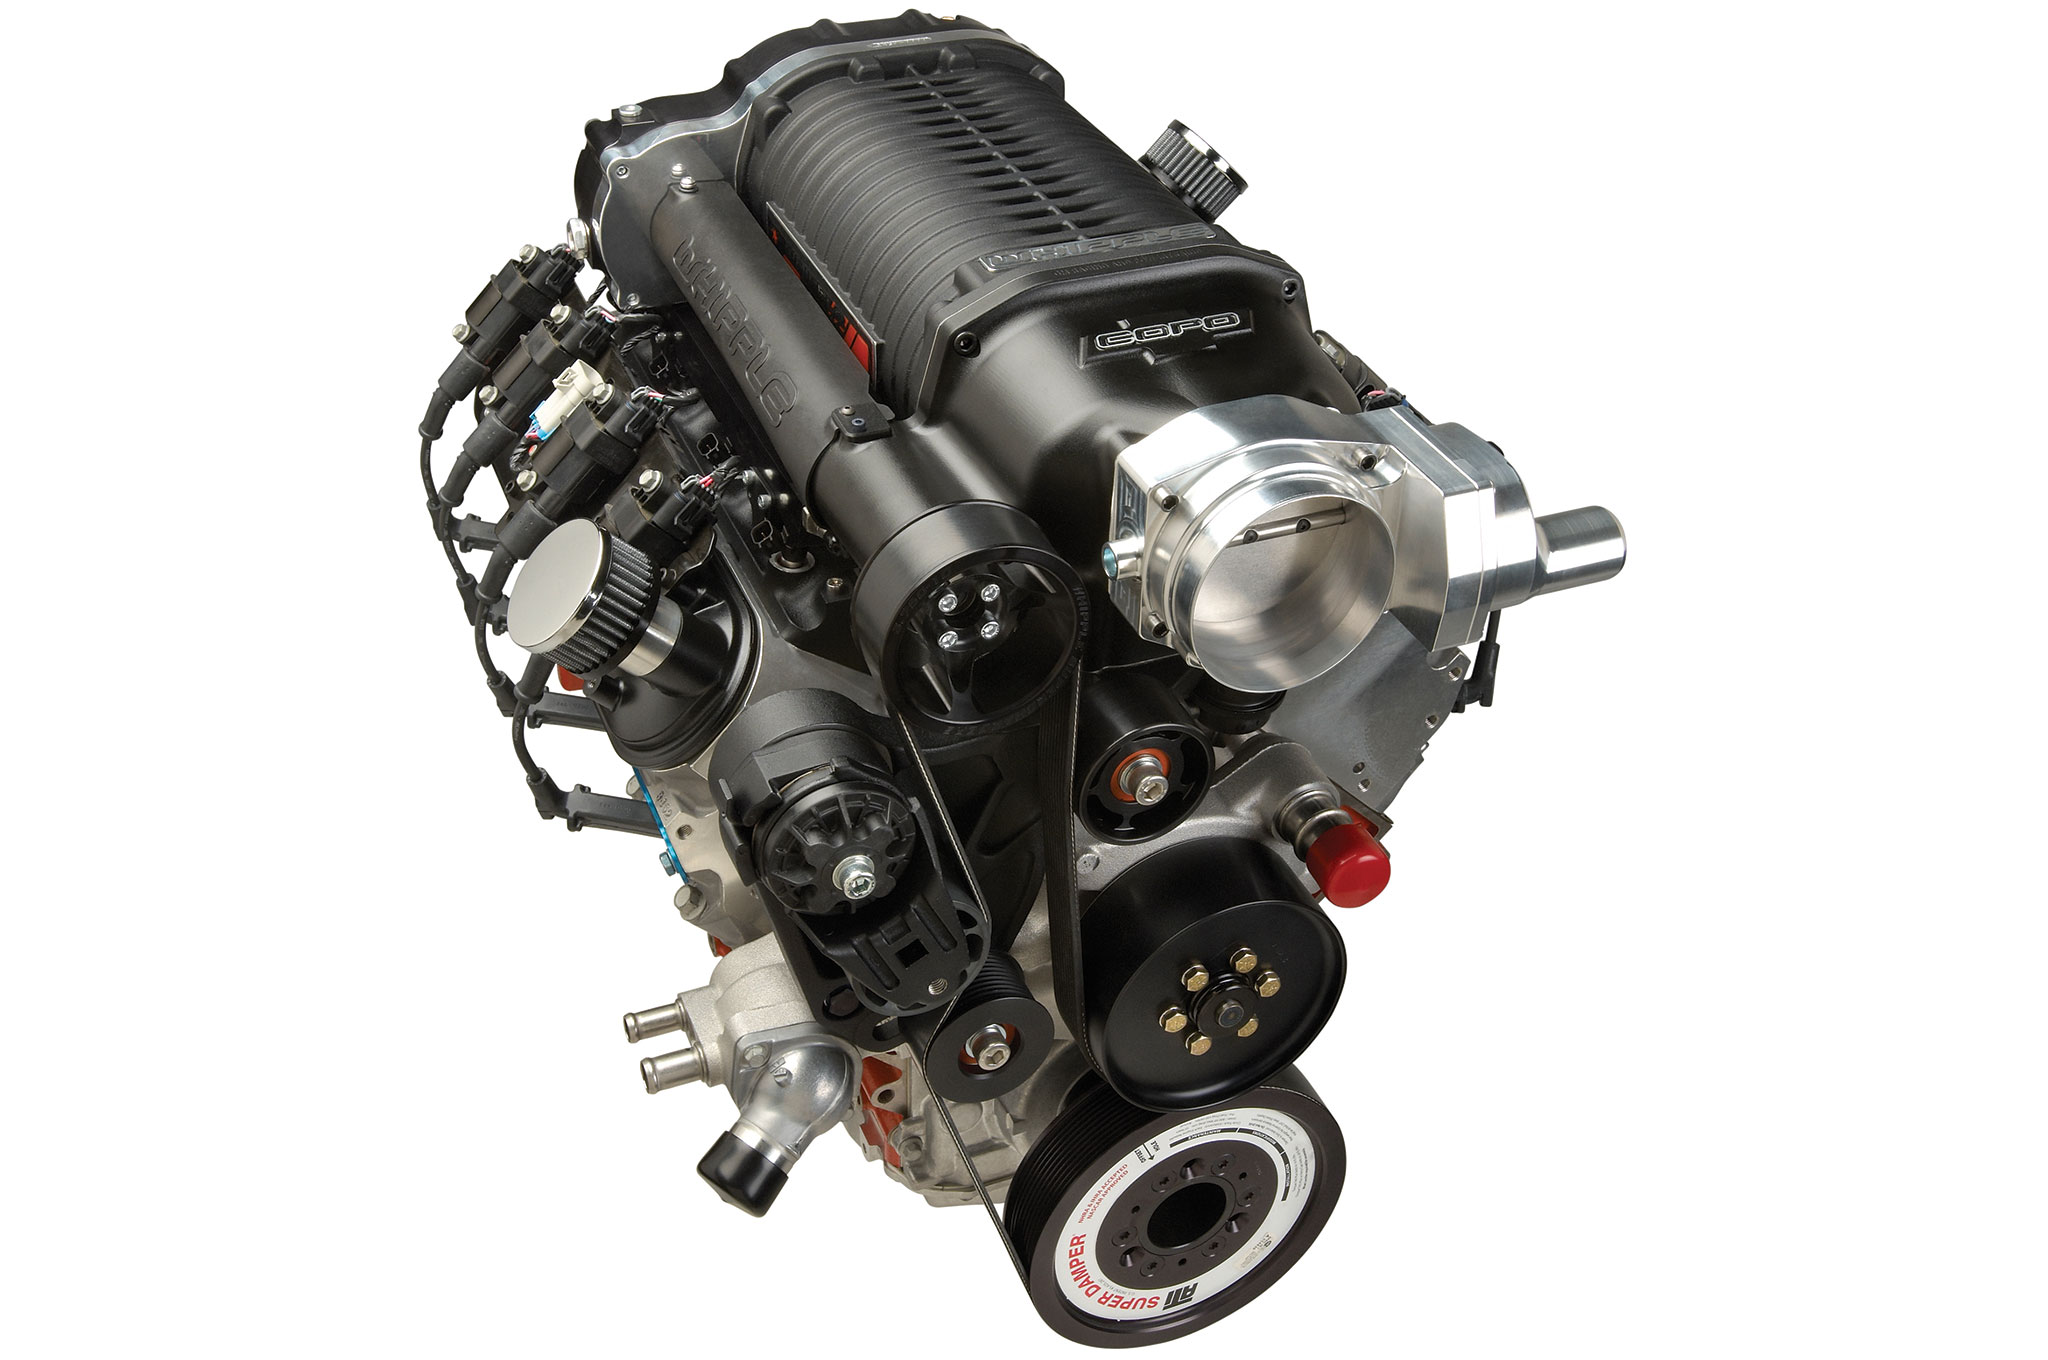 Have you seen the new GM Super Stock engines? You need this supercharged 5.3 in your Camaro.